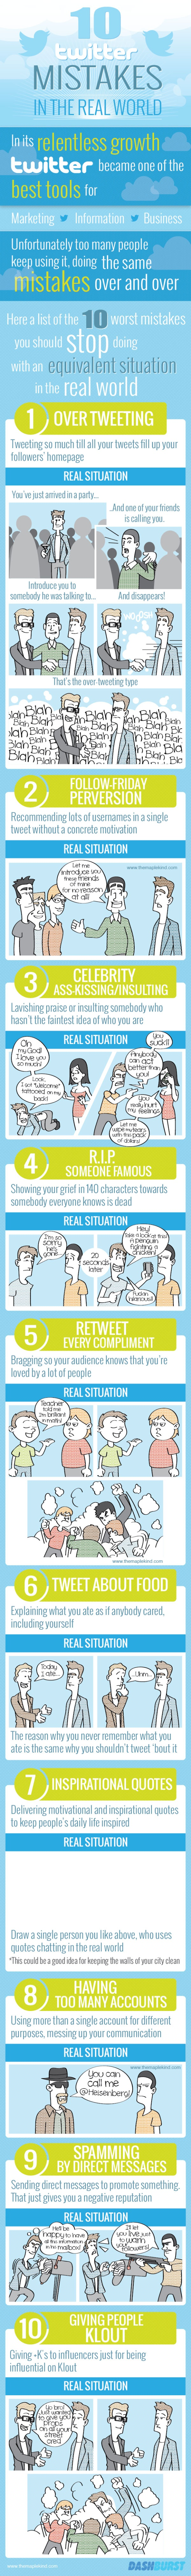 Twitter Mistakes to Watch Out For